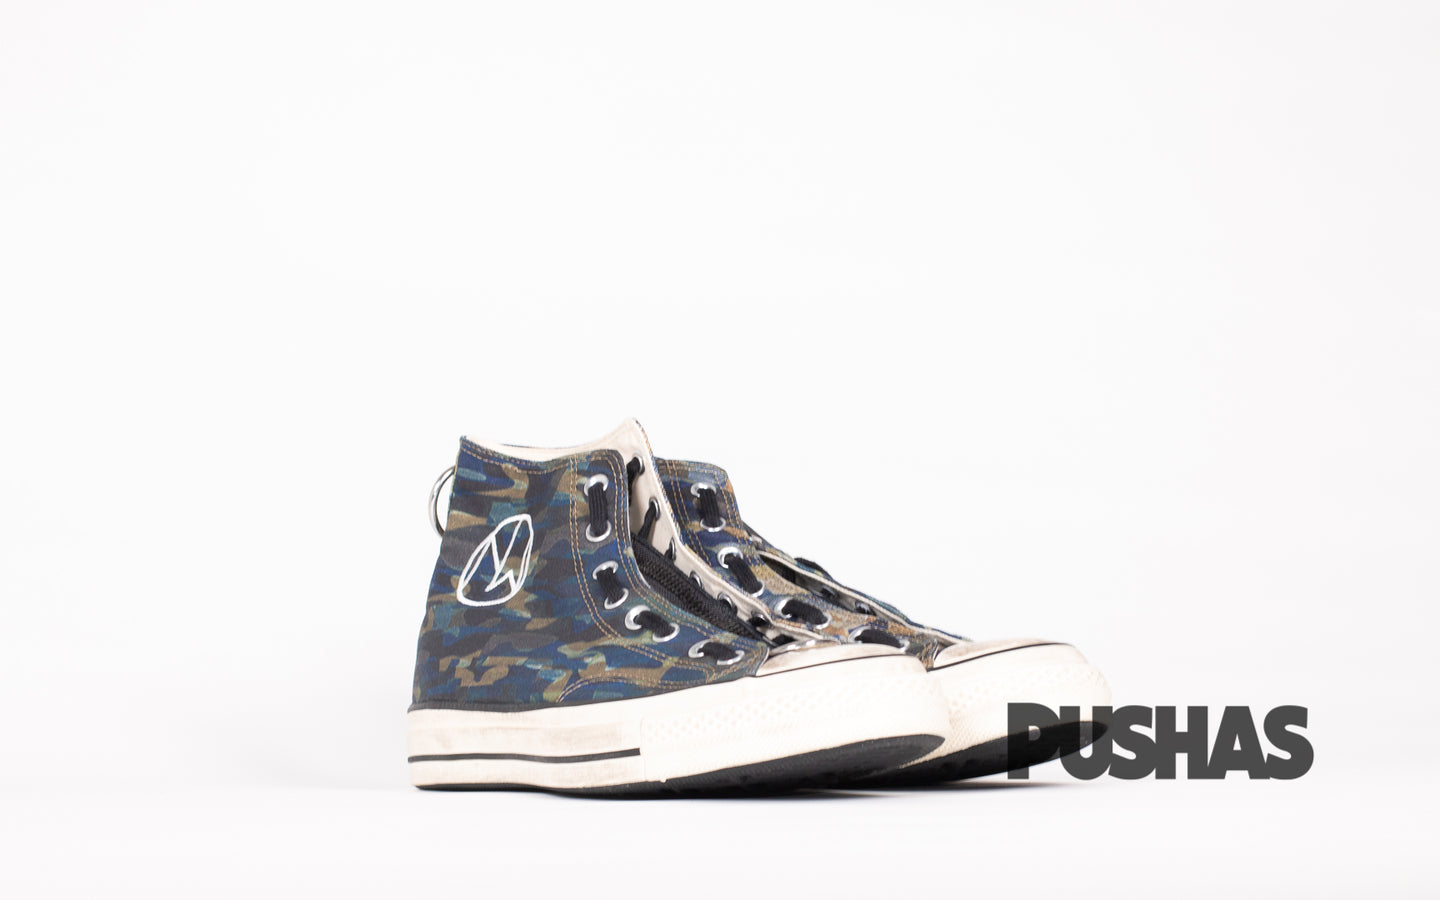 pushas-converse-Chuck-Taylor-All-Star-70s-Hi-Undercover-The-New-Warriors-Camo